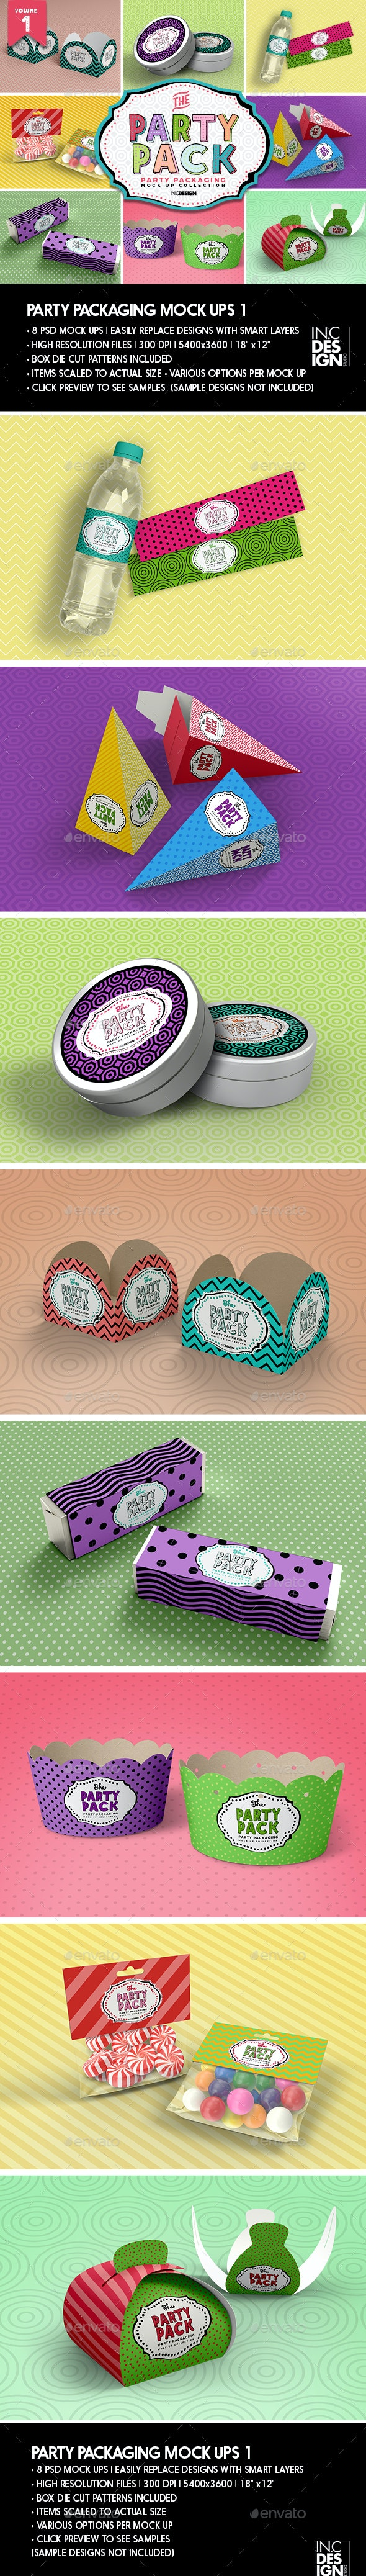 The Party Pack Packaging Mock Ups 1 - Packaging Product Mock-Ups